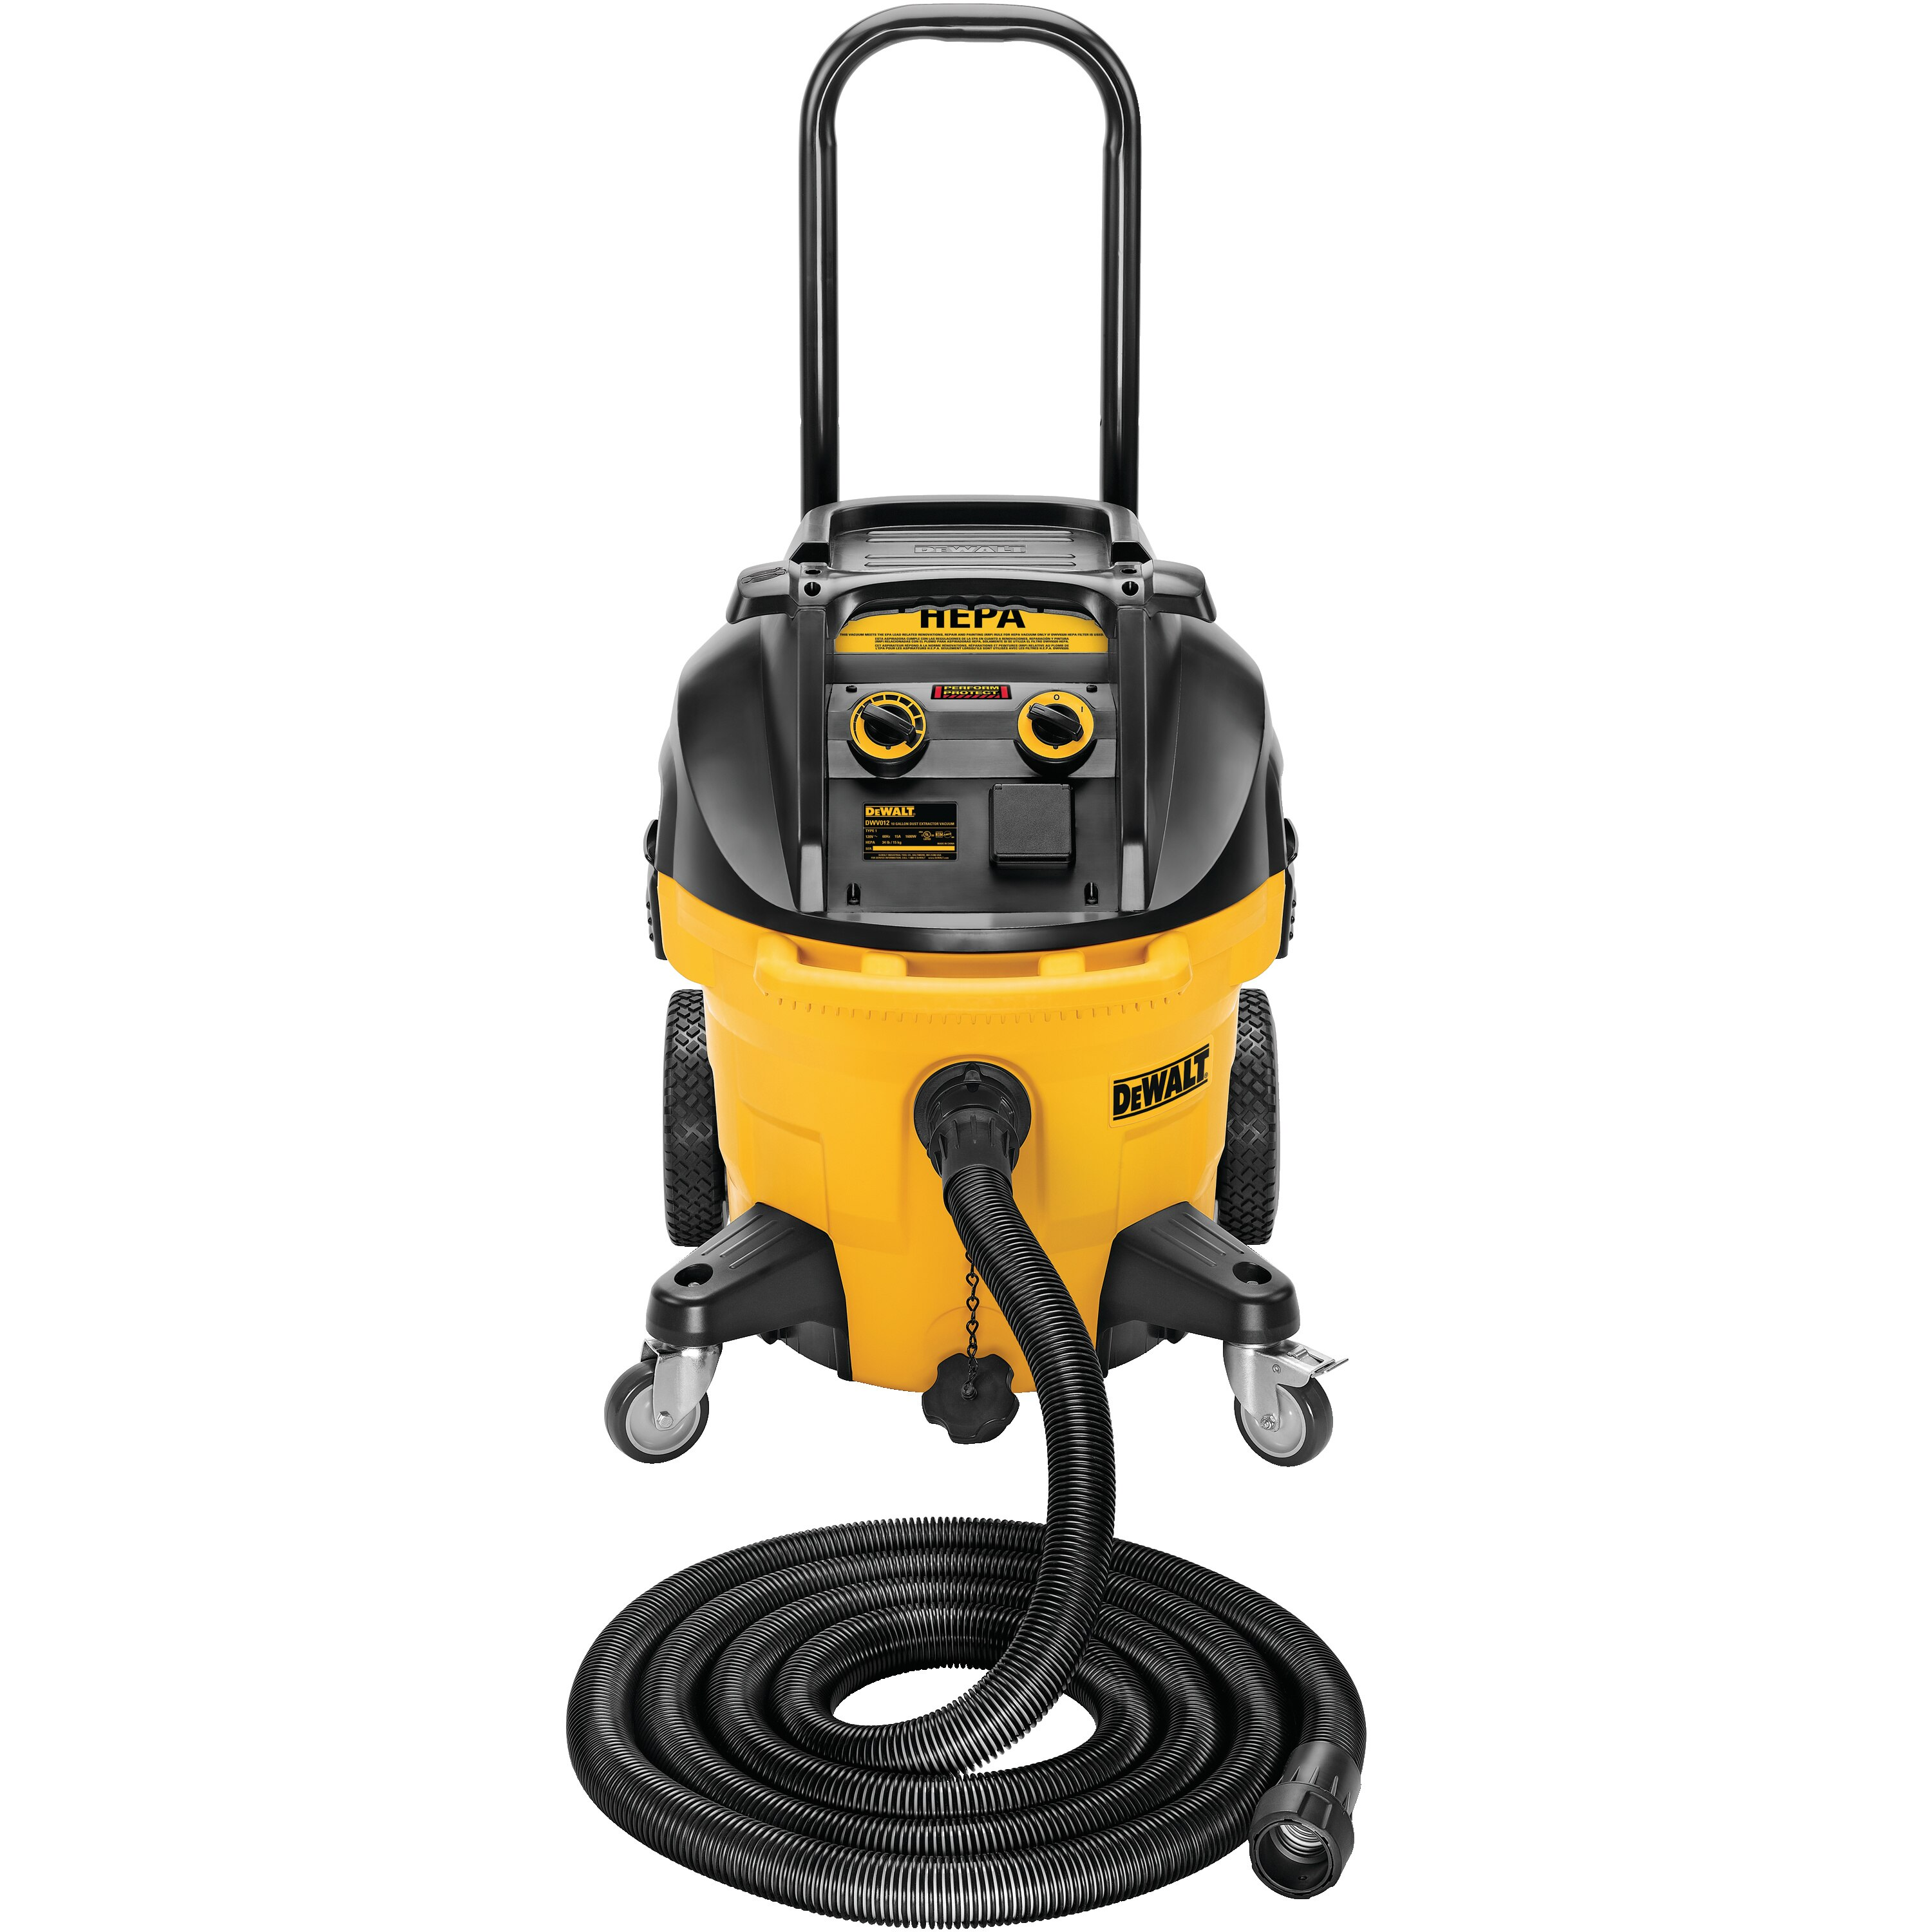 Dewalt Dust Extractor >> 10 Gallon Wet Dry Hepa Rrp Dust Extractor